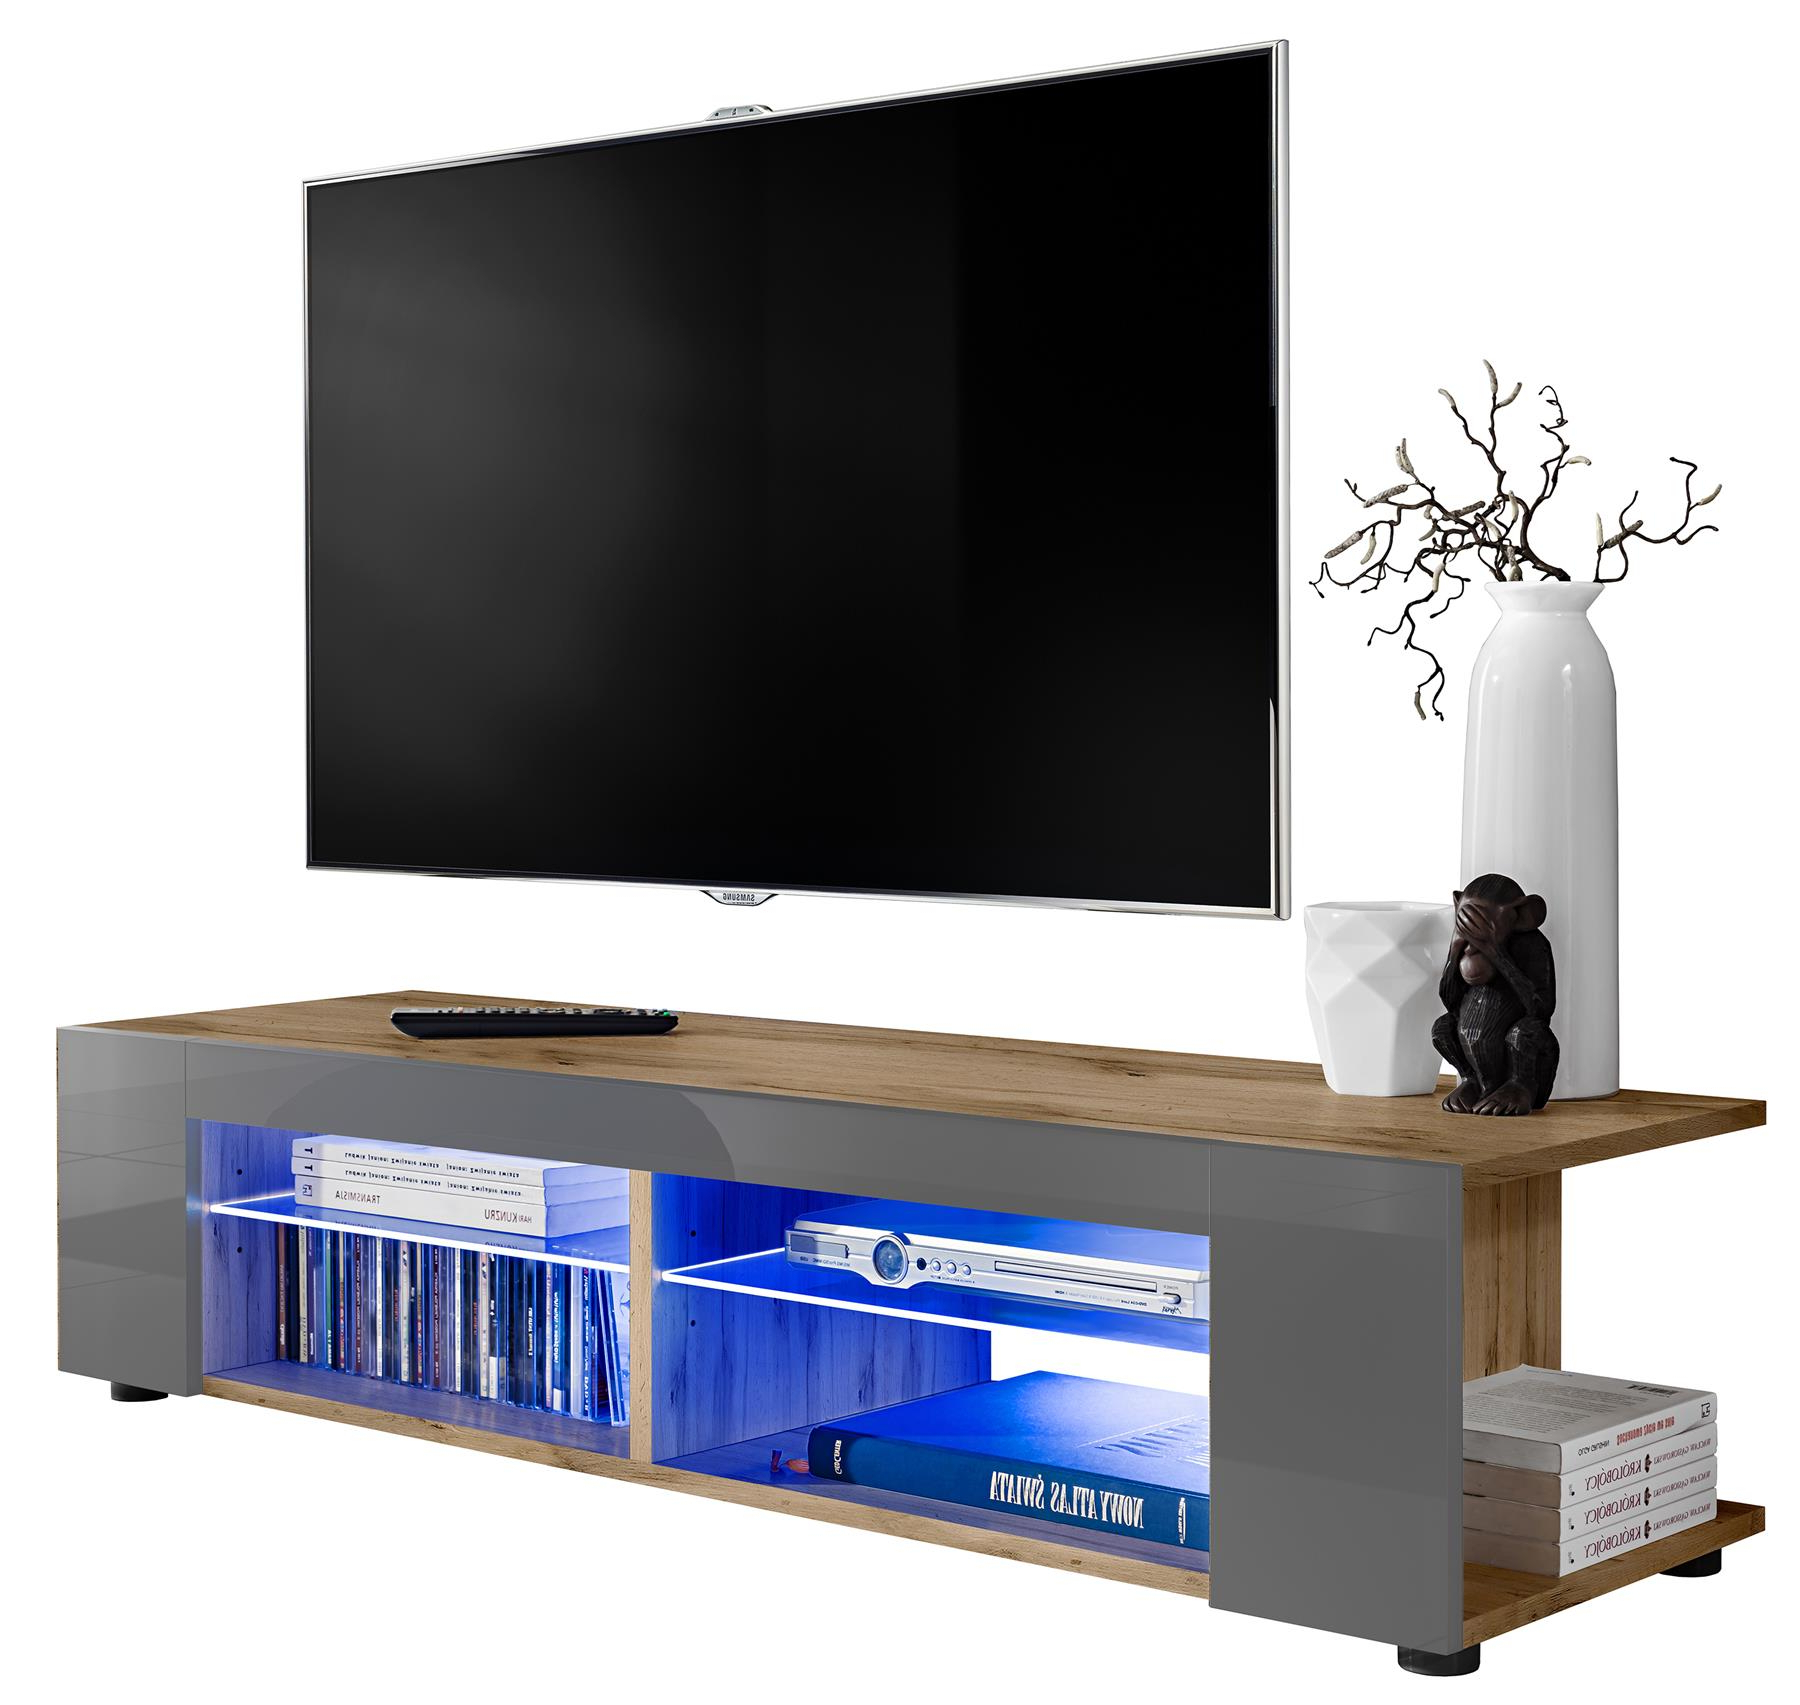 Zimtown Modern Tv Stands High Gloss Media Console Cabinet With Led Shelf And Drawers Inside 2018 Tv Stand Cabinet Led Shelf Entertainment Media Center (View 4 of 10)